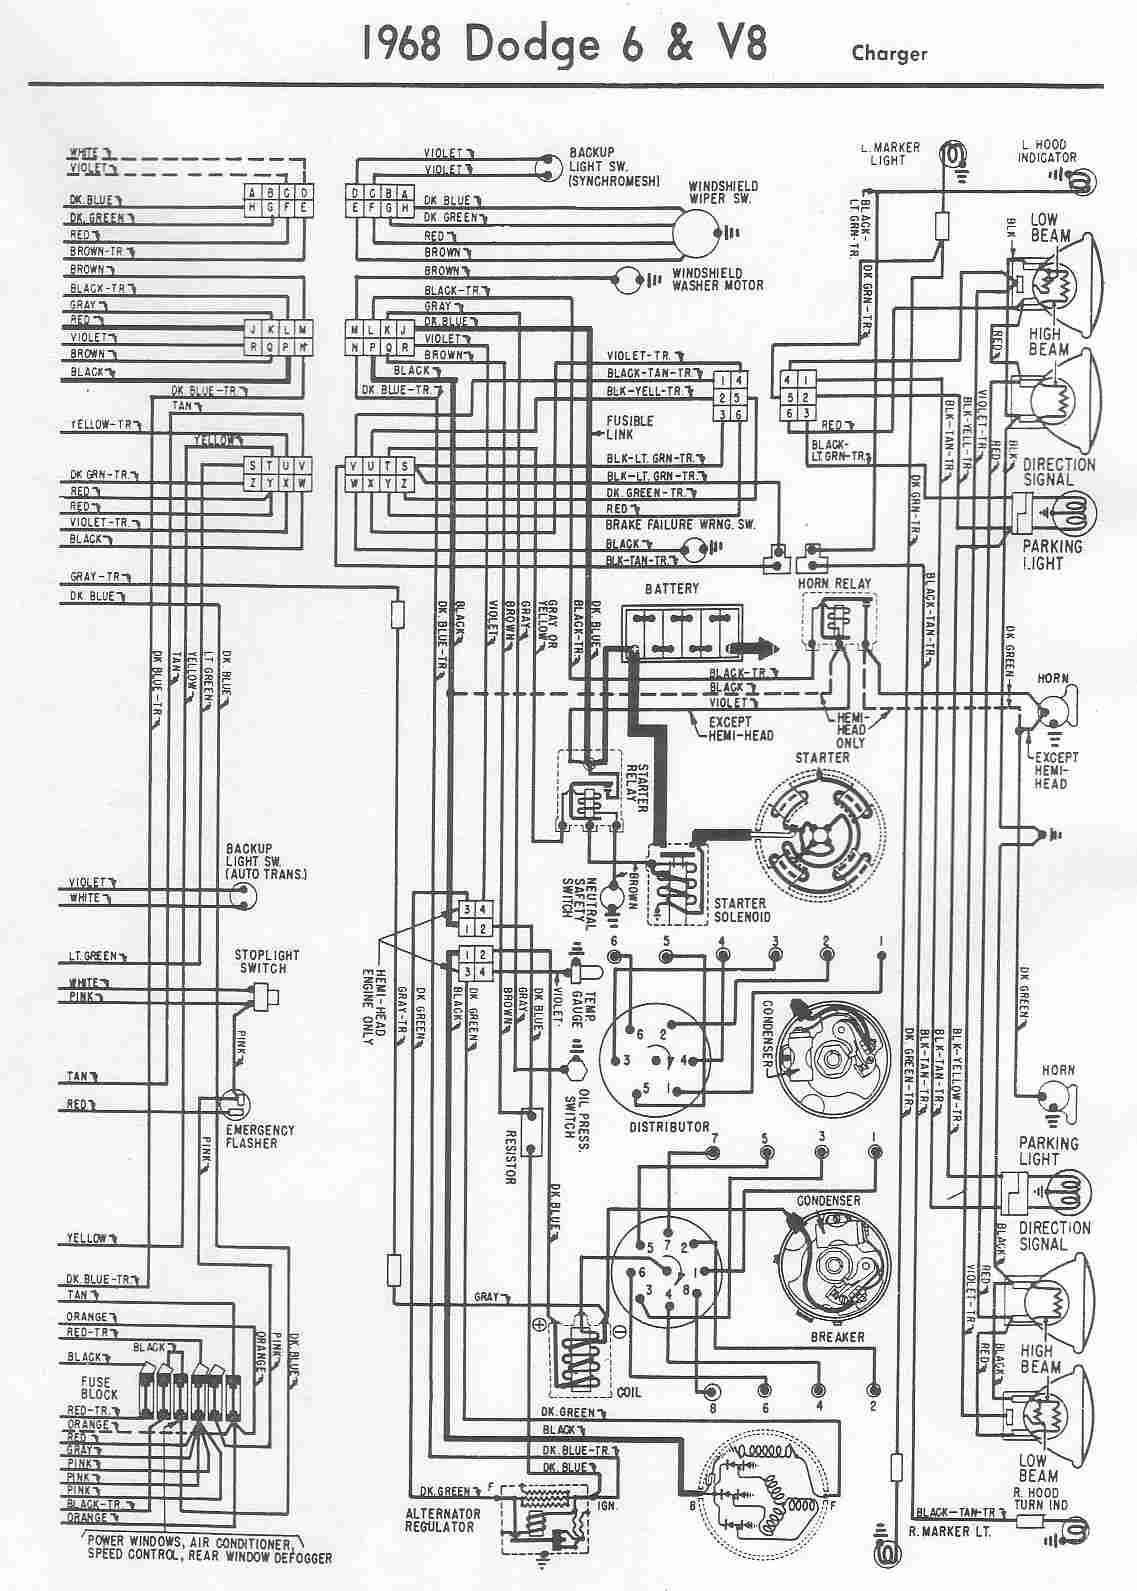 charger electrical wiring diagram of 1968 dodge 6 and v8?t=1508404771 dodge car manuals, wiring diagrams pdf & fault codes 1970 dodge challenger wiring diagram at webbmarketing.co